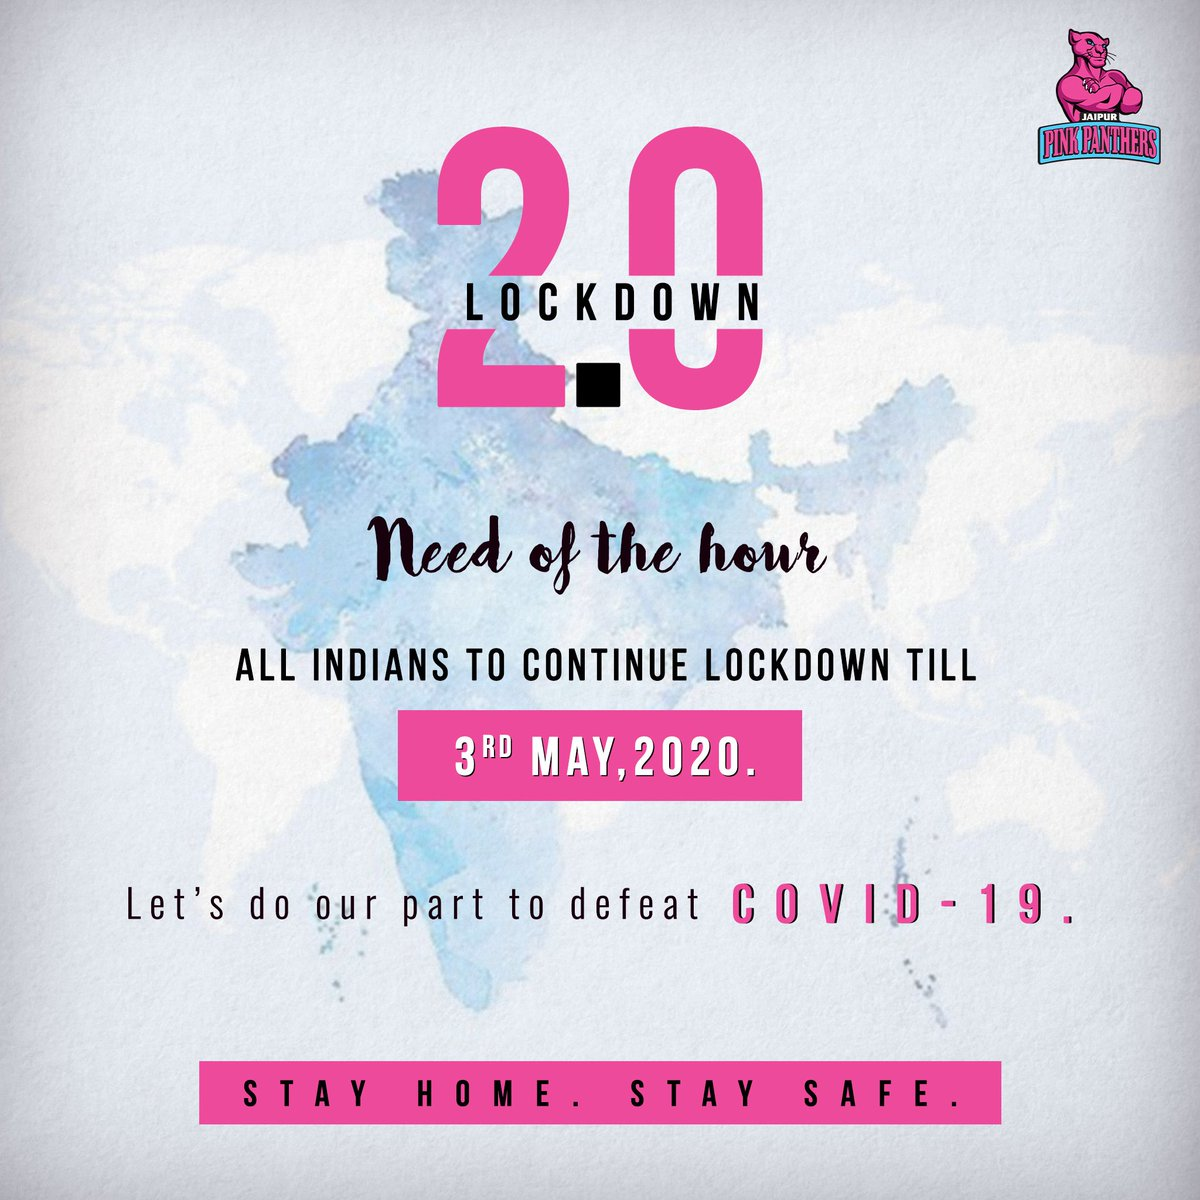 We've managed to stay apart, and have fought well together.  The need of the hour is to continue to play our part until May 3, 2020.  Maintain social distancing, #StayAtHome and #StaySafe. We'll roar together and get past this.  #Lockdown2 #StayHome #StaySafe #RoarForPanthers